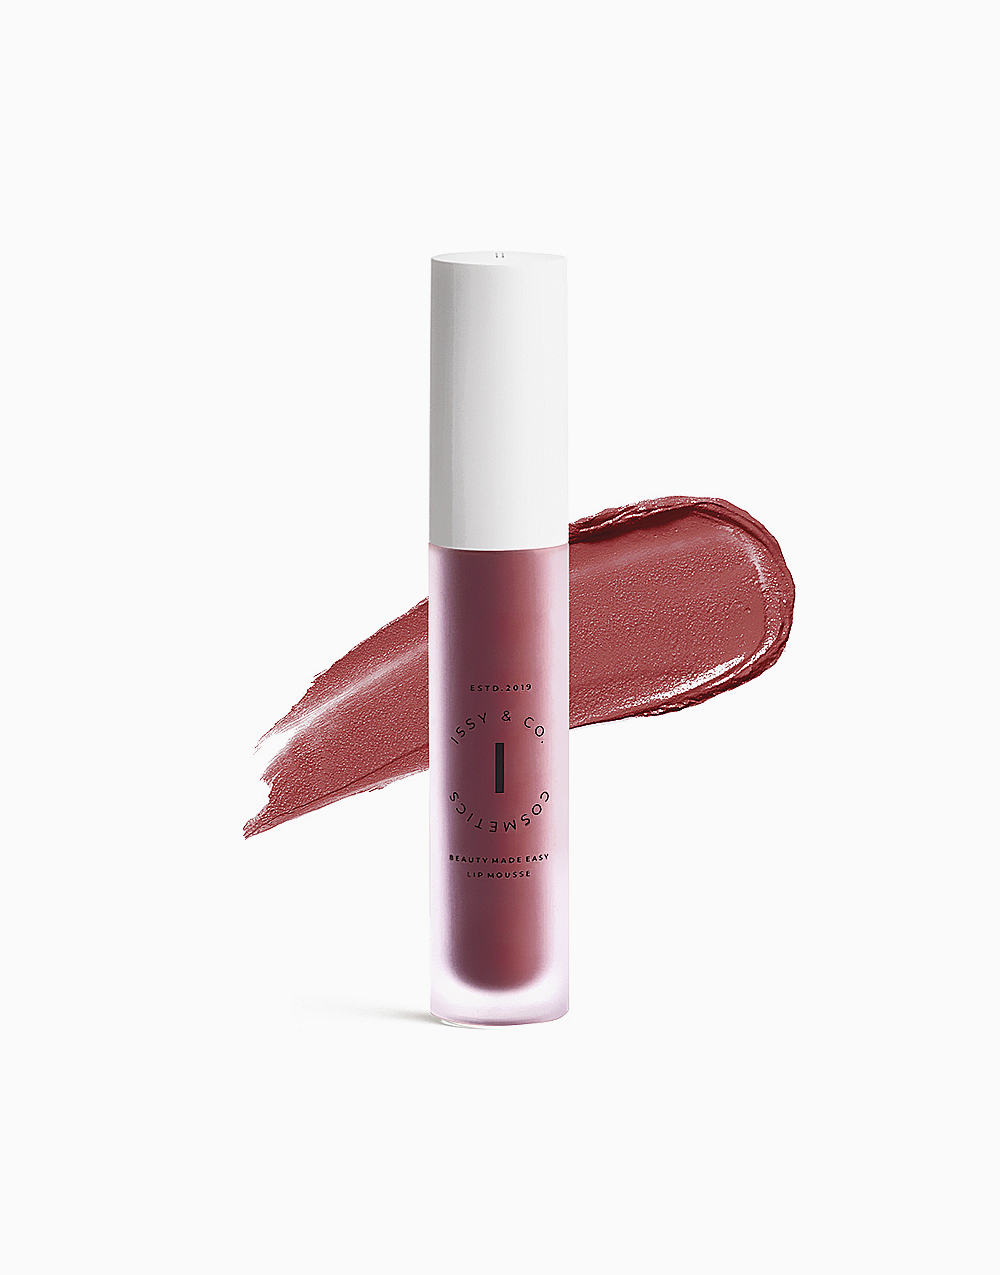 Lip Mousse by Issy & Co. | Fiancee